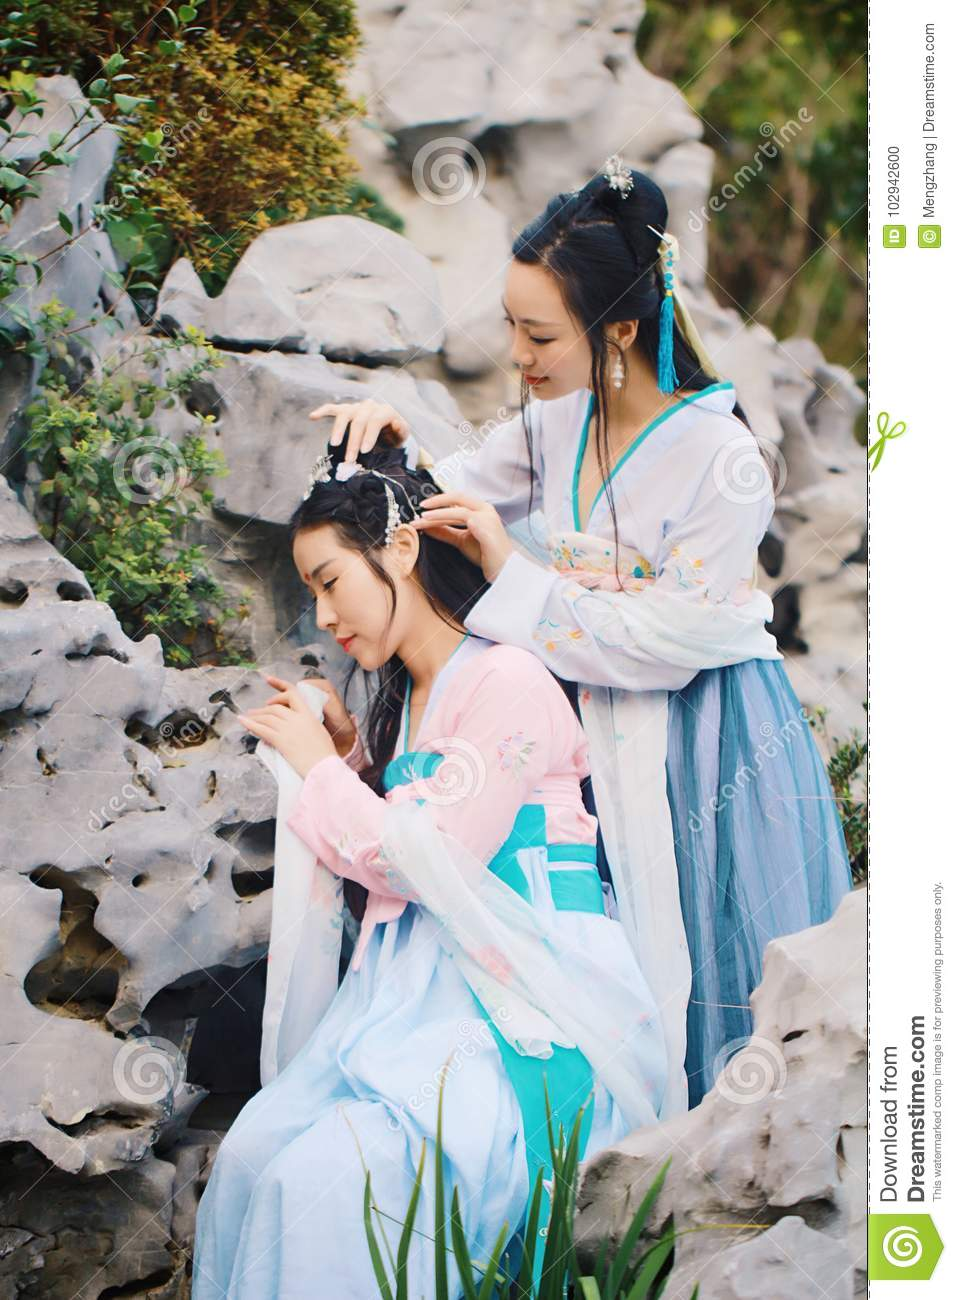 371ba38f2 Close girlfriends bestie in Chinese traditional hanfu dress in a garden, ancient  chinese hanfu dress, graceful women forever friendship sweet girls hold ...